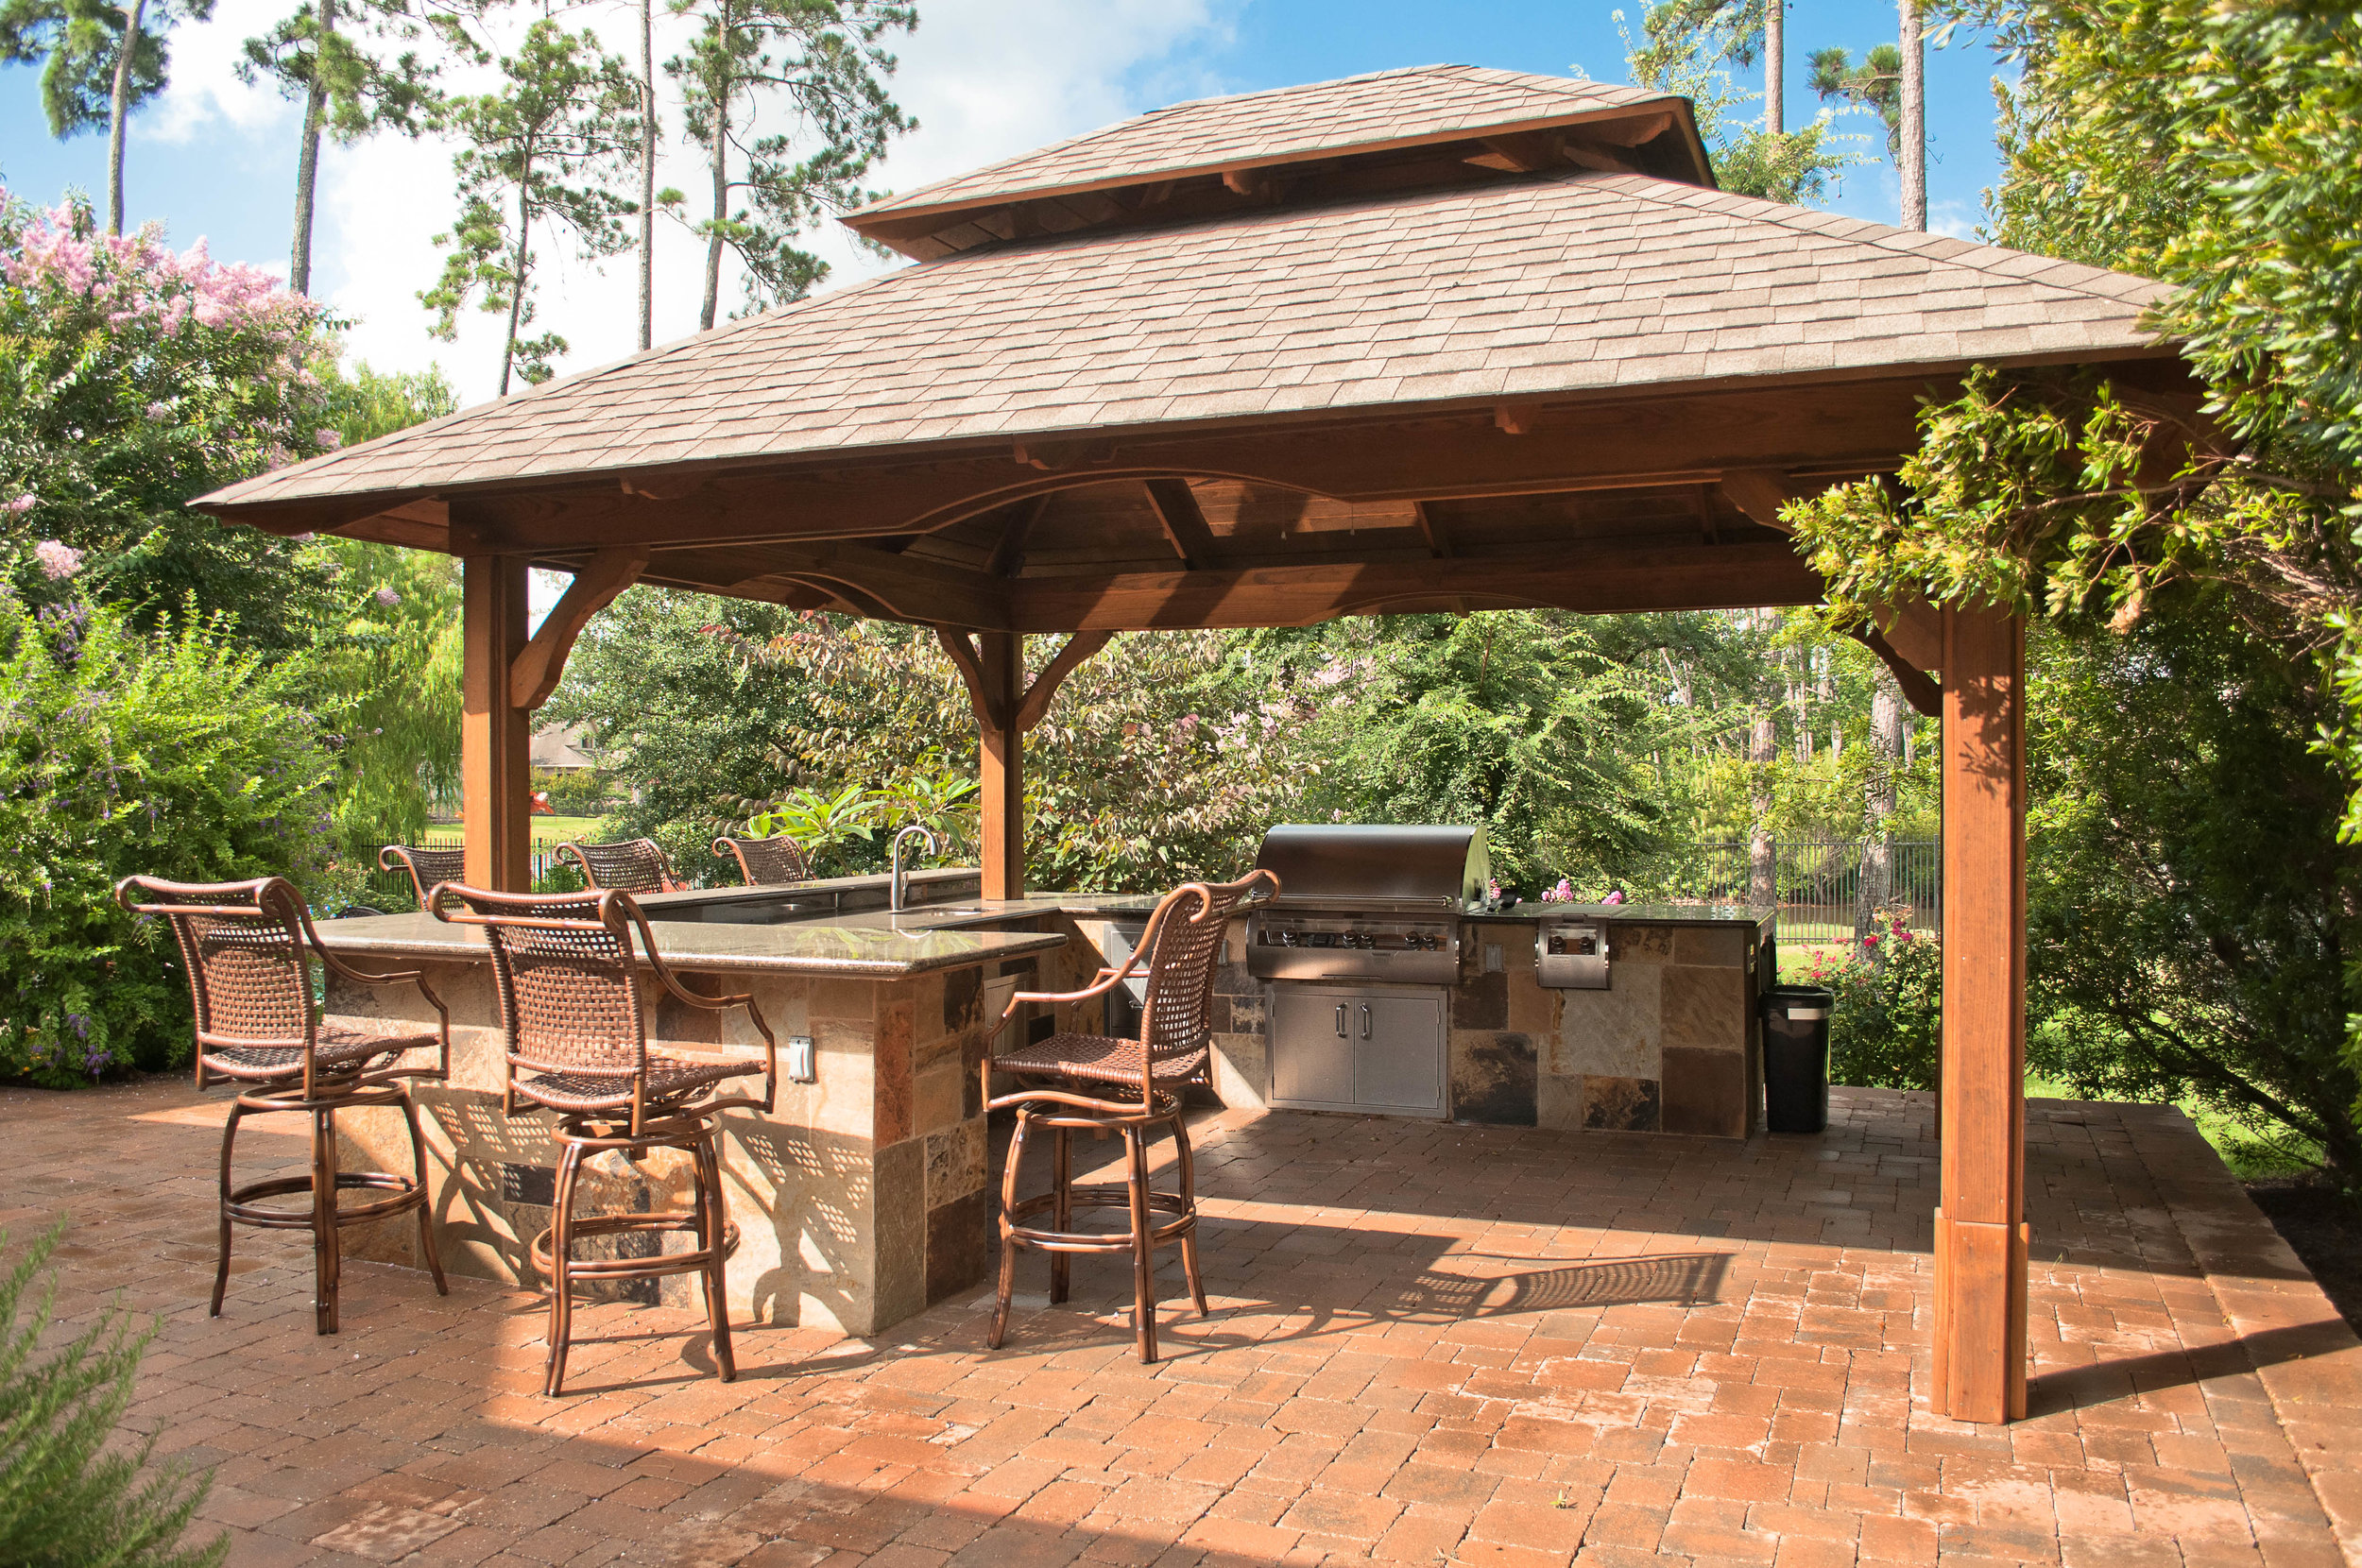 Mirror Lake Outdoor Kitchens 12.jpg